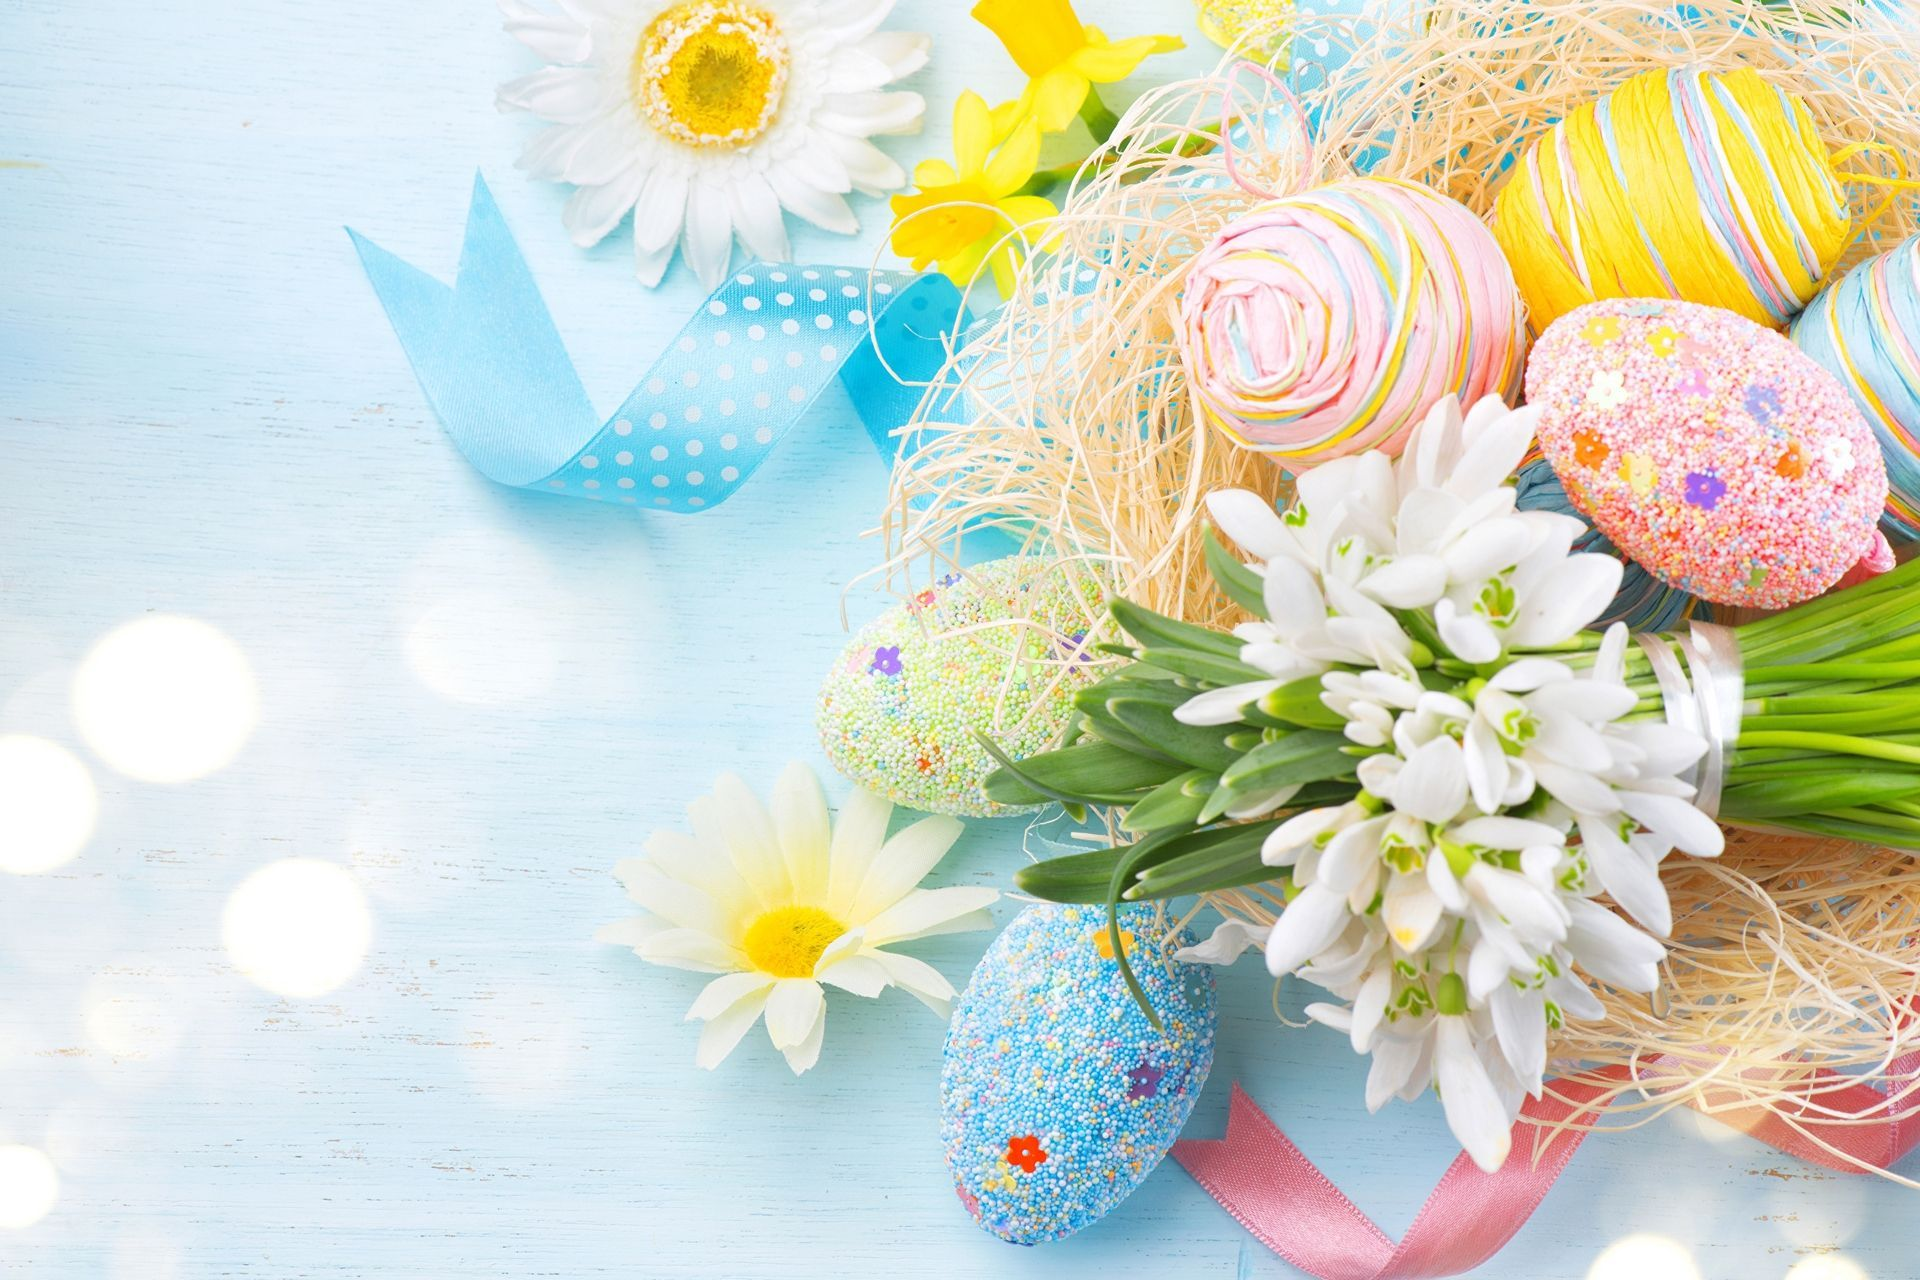 Miam images page 19 - Ostern wallpaper ...